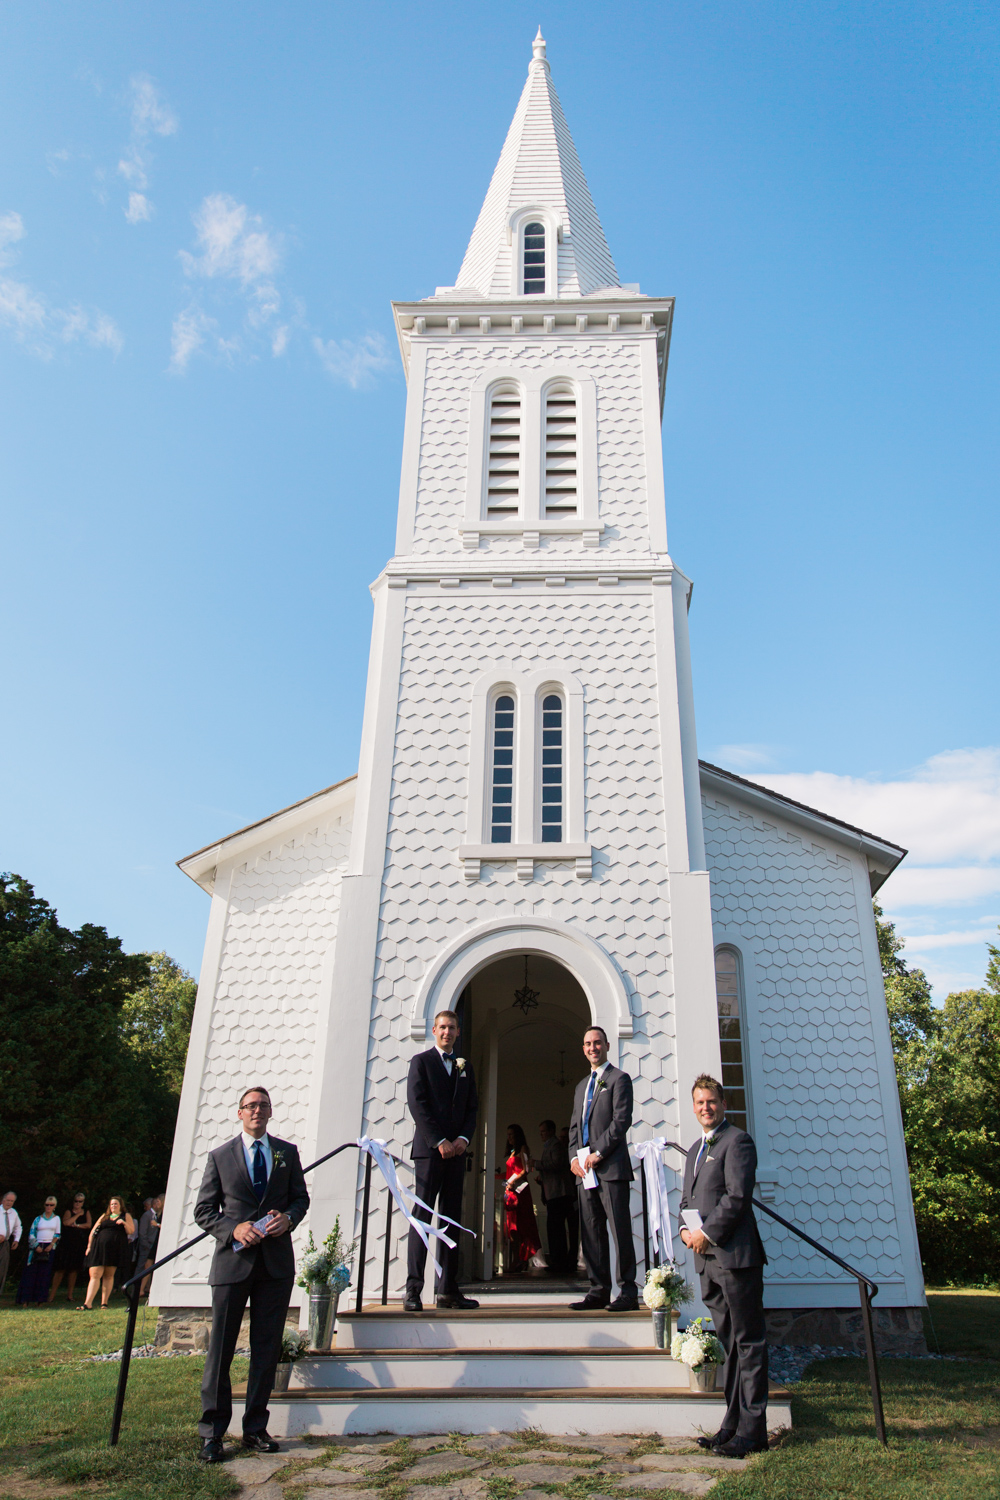 south-ferry-church-wedding